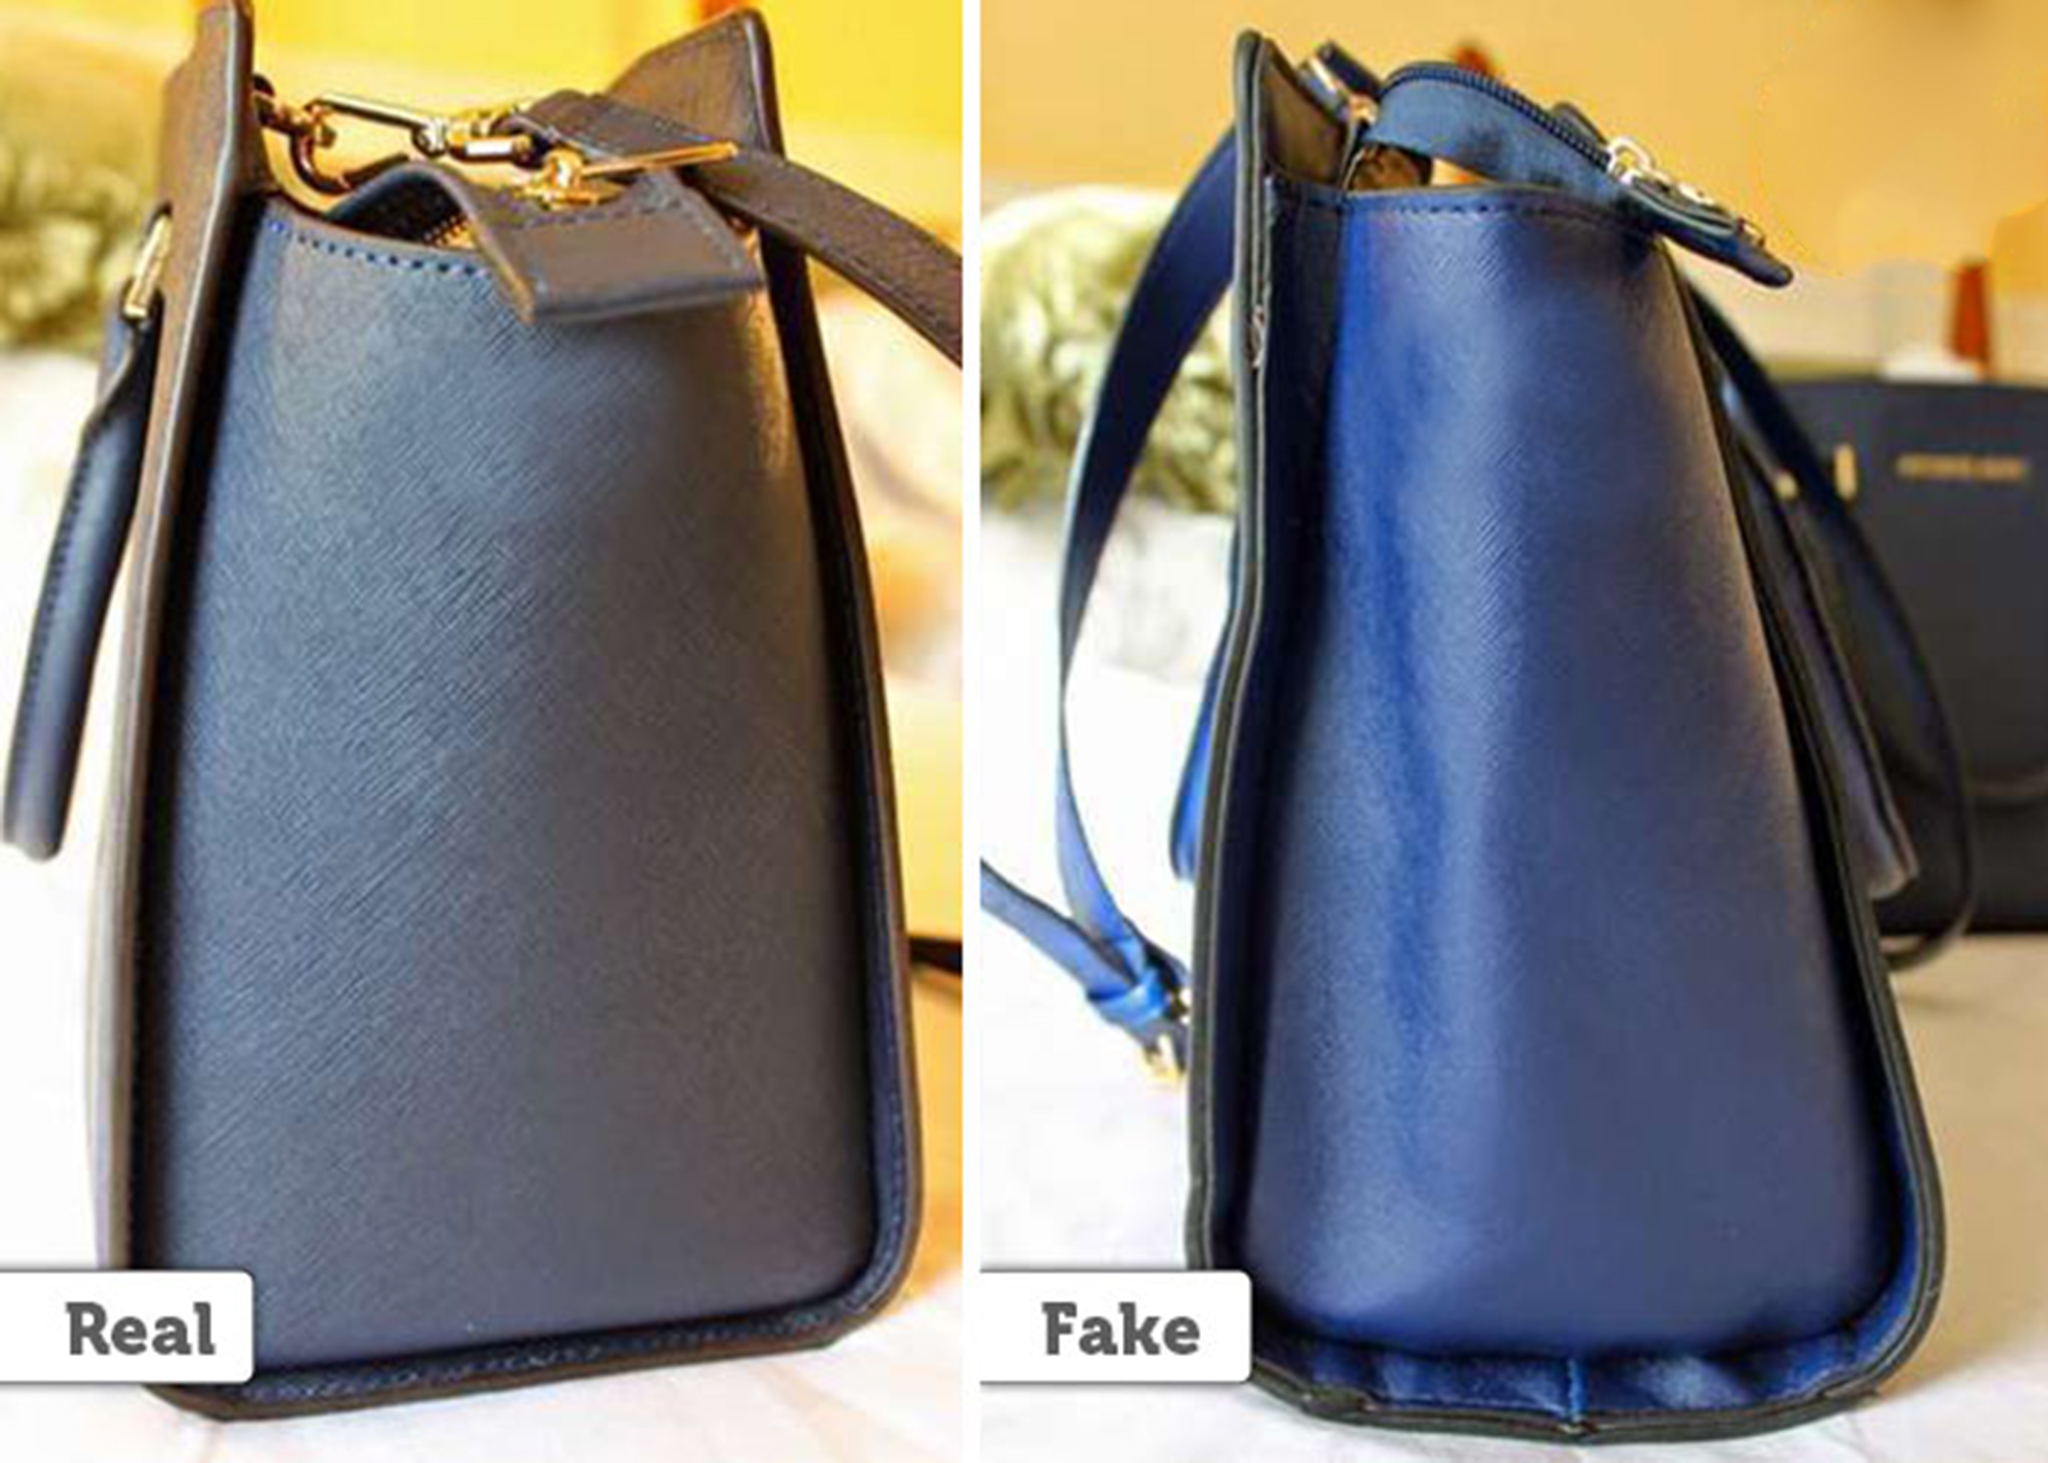 4 A Fake Mk Bag Will Have More E Between Its Sides While The Real Has Lesser On